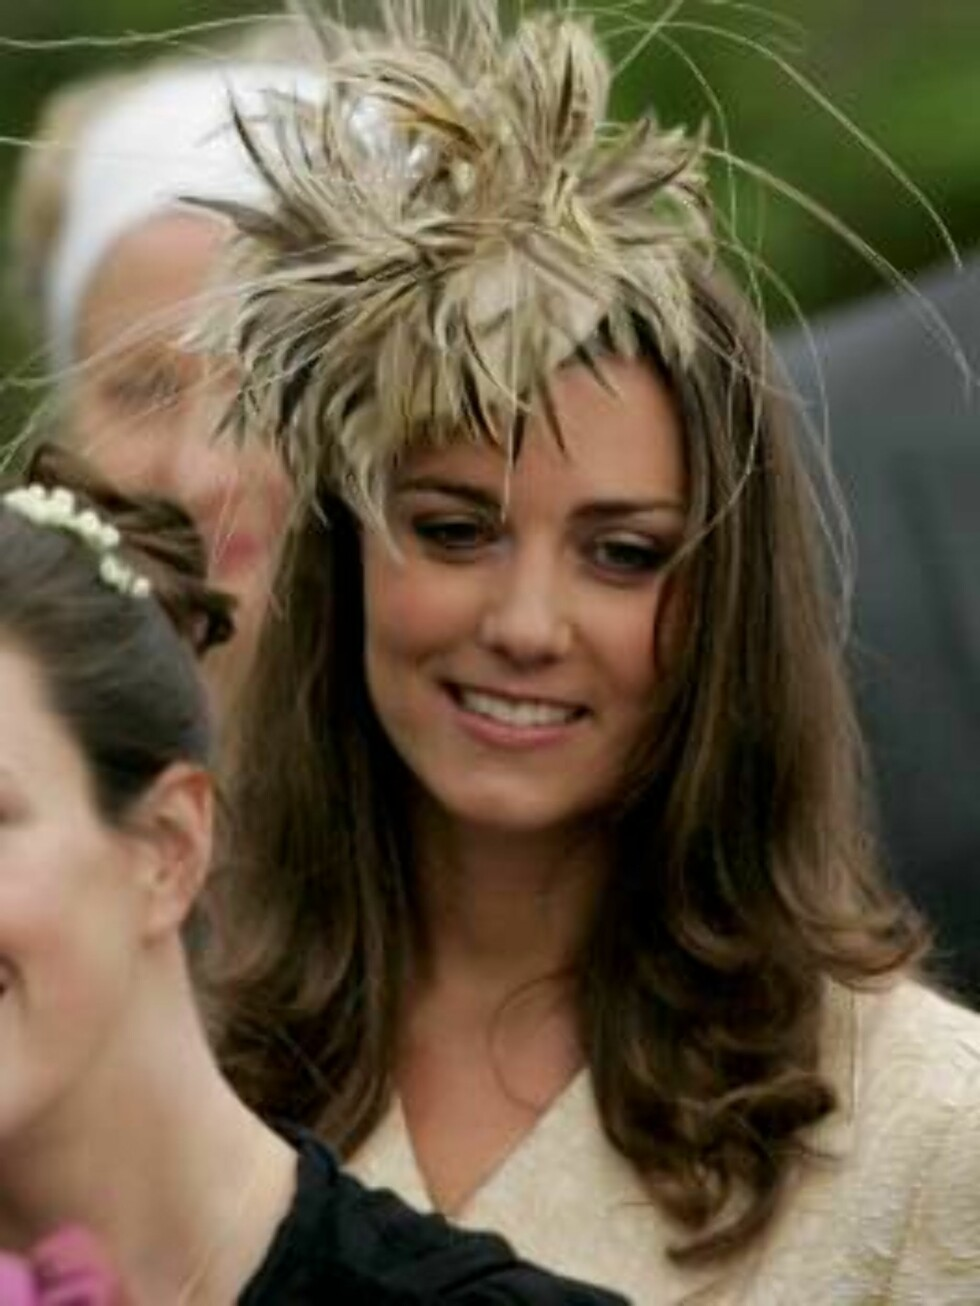 Kate Middleton, the girlfriend of Britain's Prince William, leaves St Cyriac's Church, in Lacock, Wiltshire, England, after attending the wedding of Laura Parker Bowles and Harry Lopes at a private ceremony, Saturday May 6, 2006. Laura Parker Bowles, a ar Foto: AP